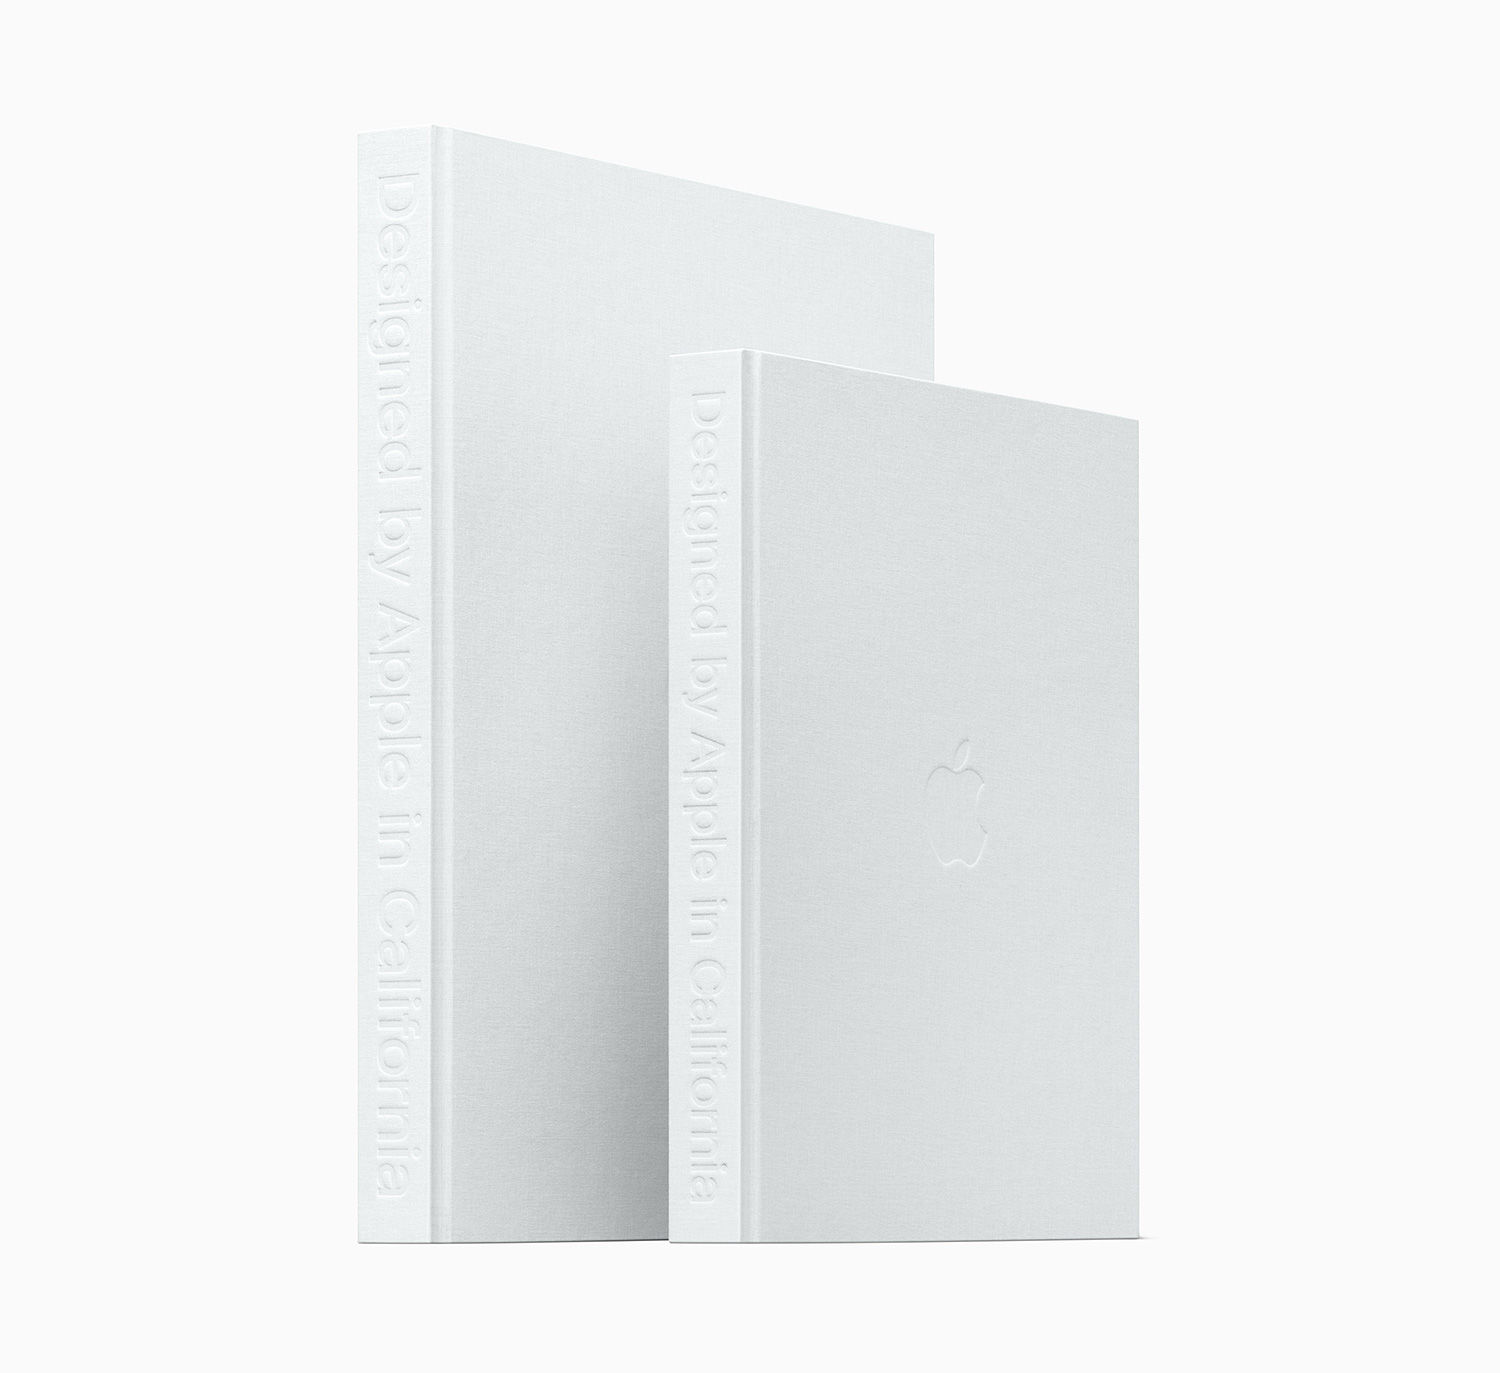 Apple Chronicles 20 Years Of Design In New Book News